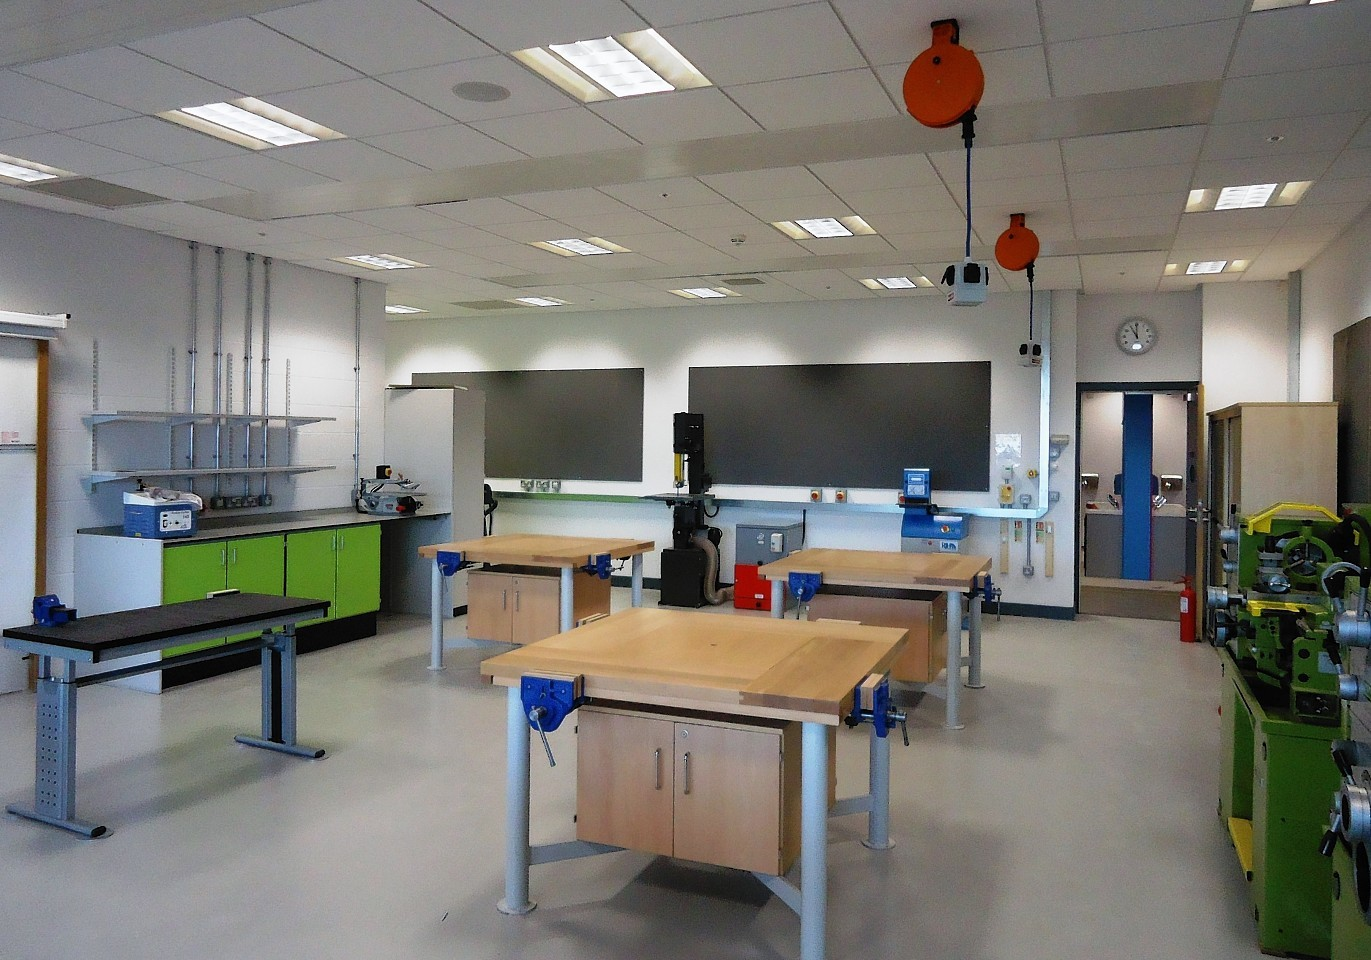 Inside Alford Community Campus